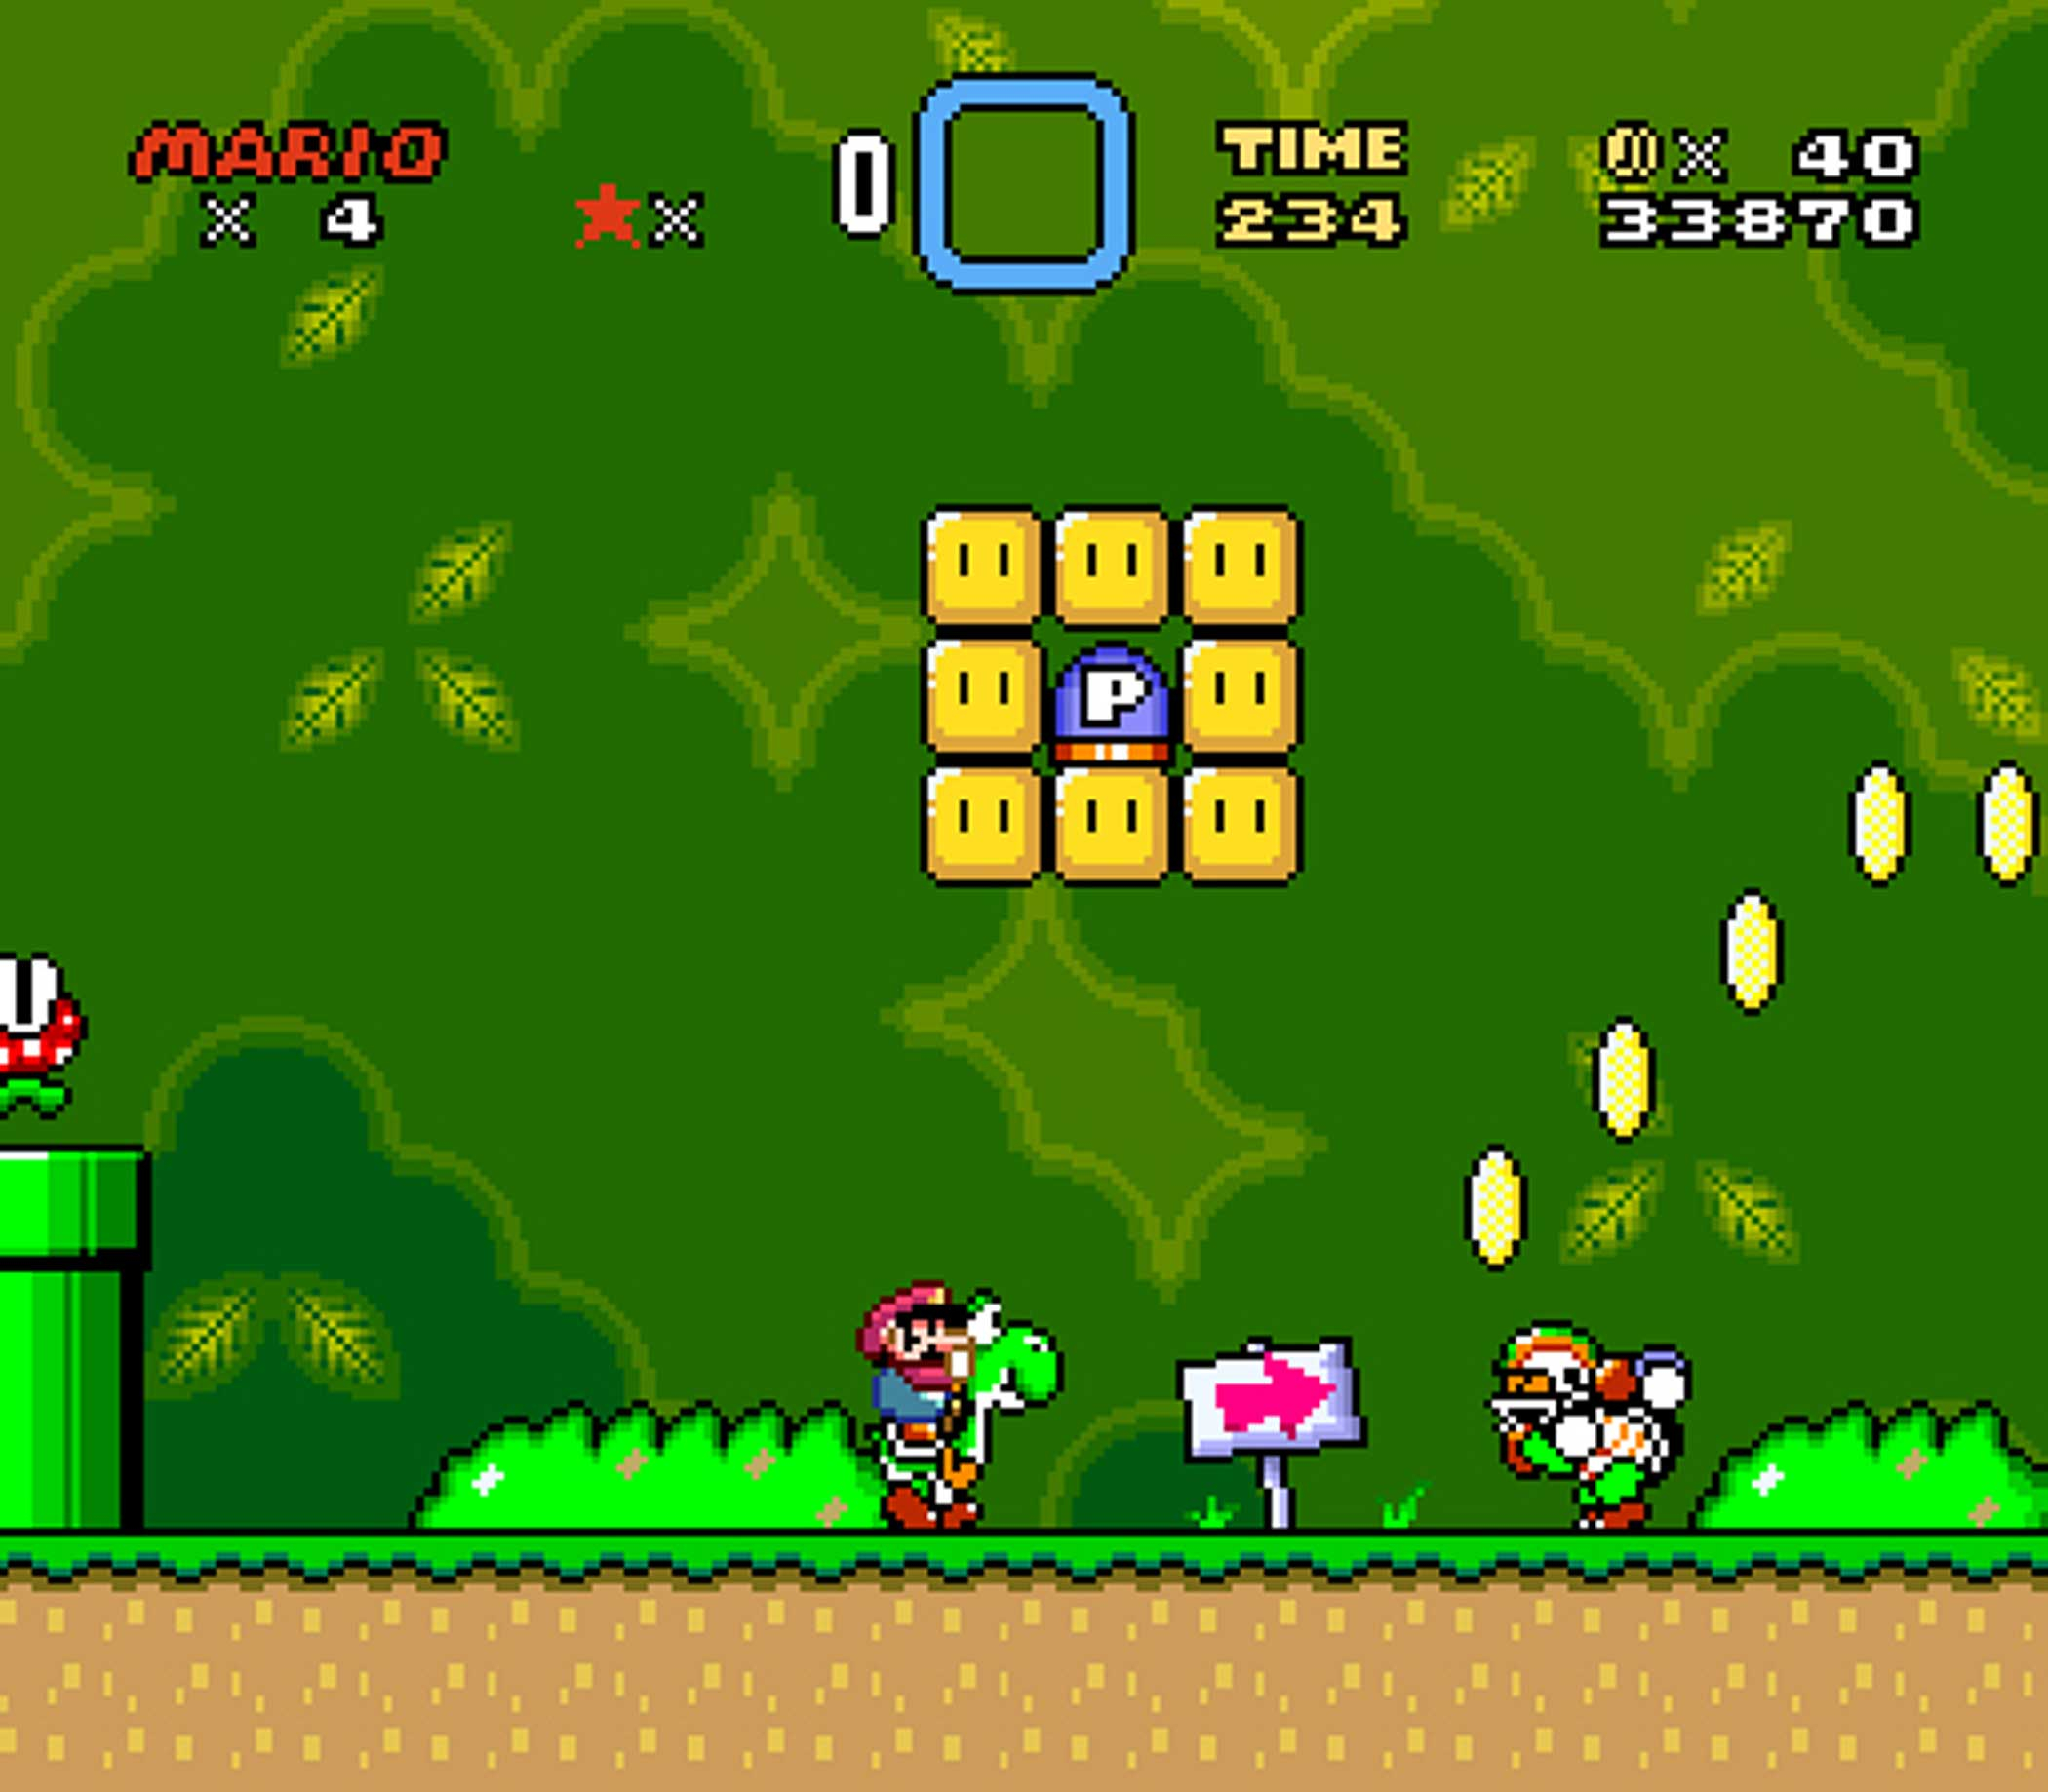 1991: Super Mario World                                                               First released in Japan in late 1990, Super Mario World--bundled with the Super Nintendo Entertainment System--wound up defining next-gen platforming during the 16-bit console era. It introduced Yoshi (Mario's dinosaur sidekick), showcased series' music composer Koji Kondo's most memorable tunes, and ranks among the most acclaimed entries in the franchise.